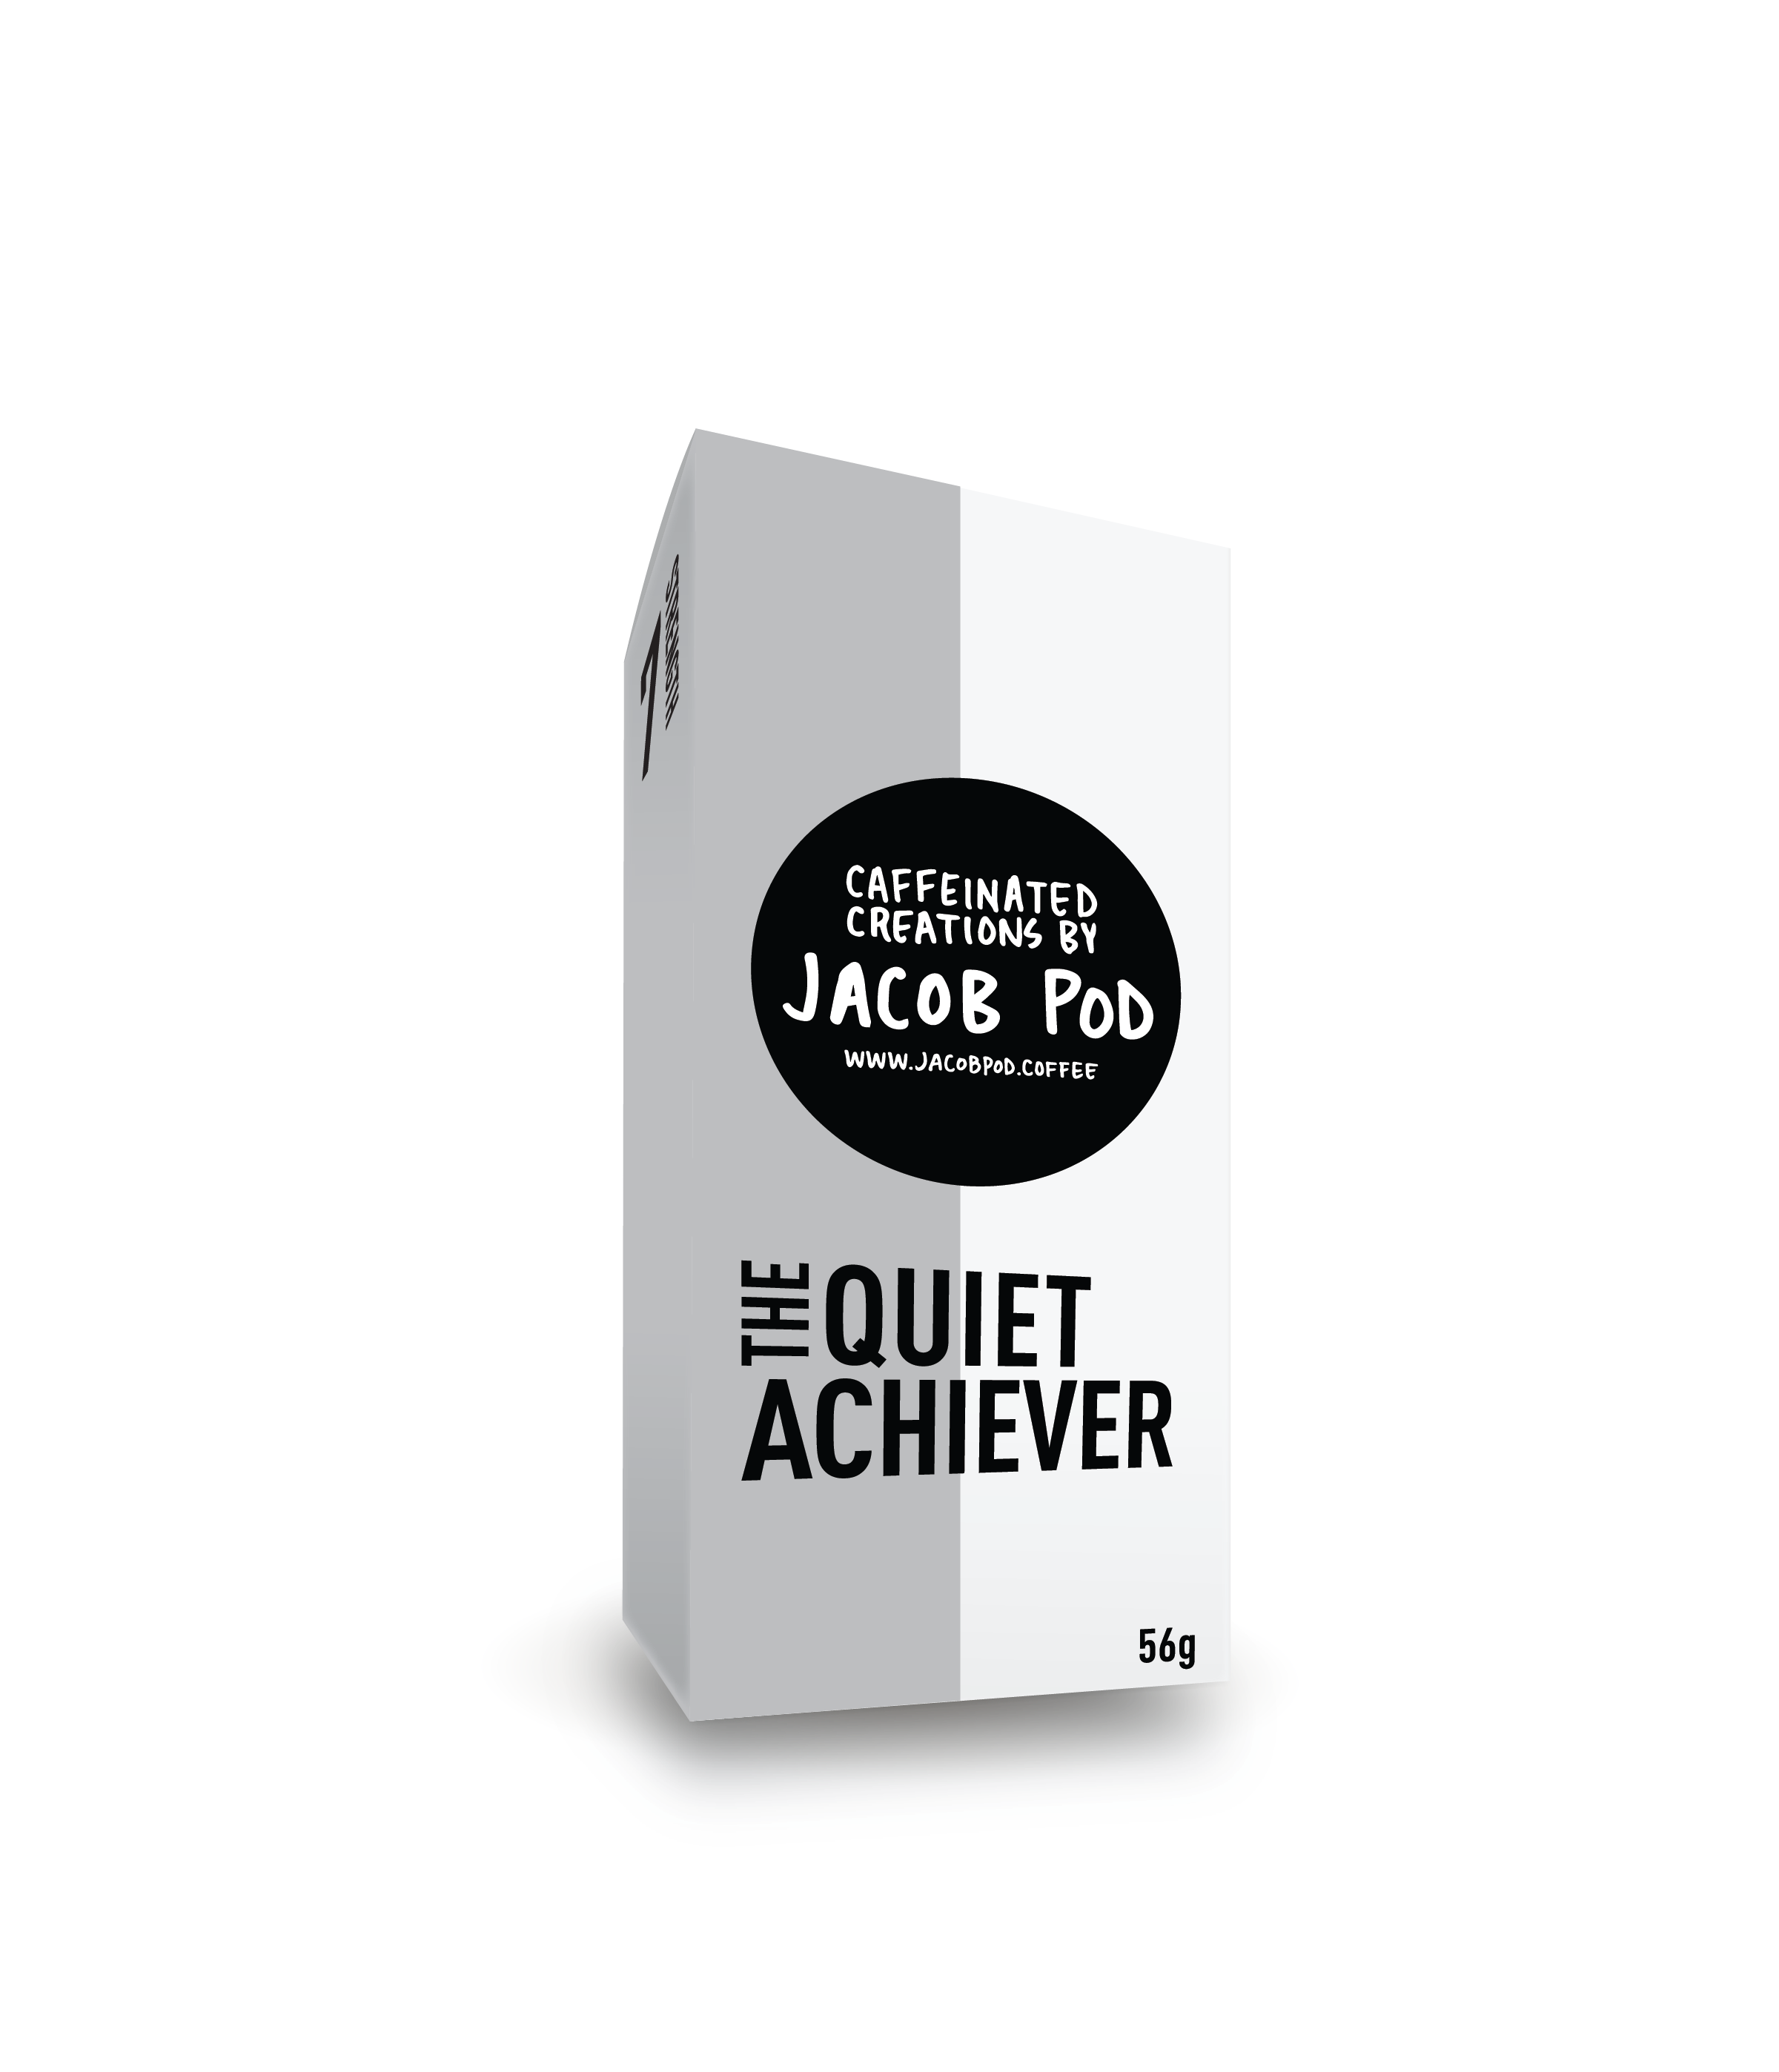 08 JacobPodCoffeeBoxes - Quiet.png